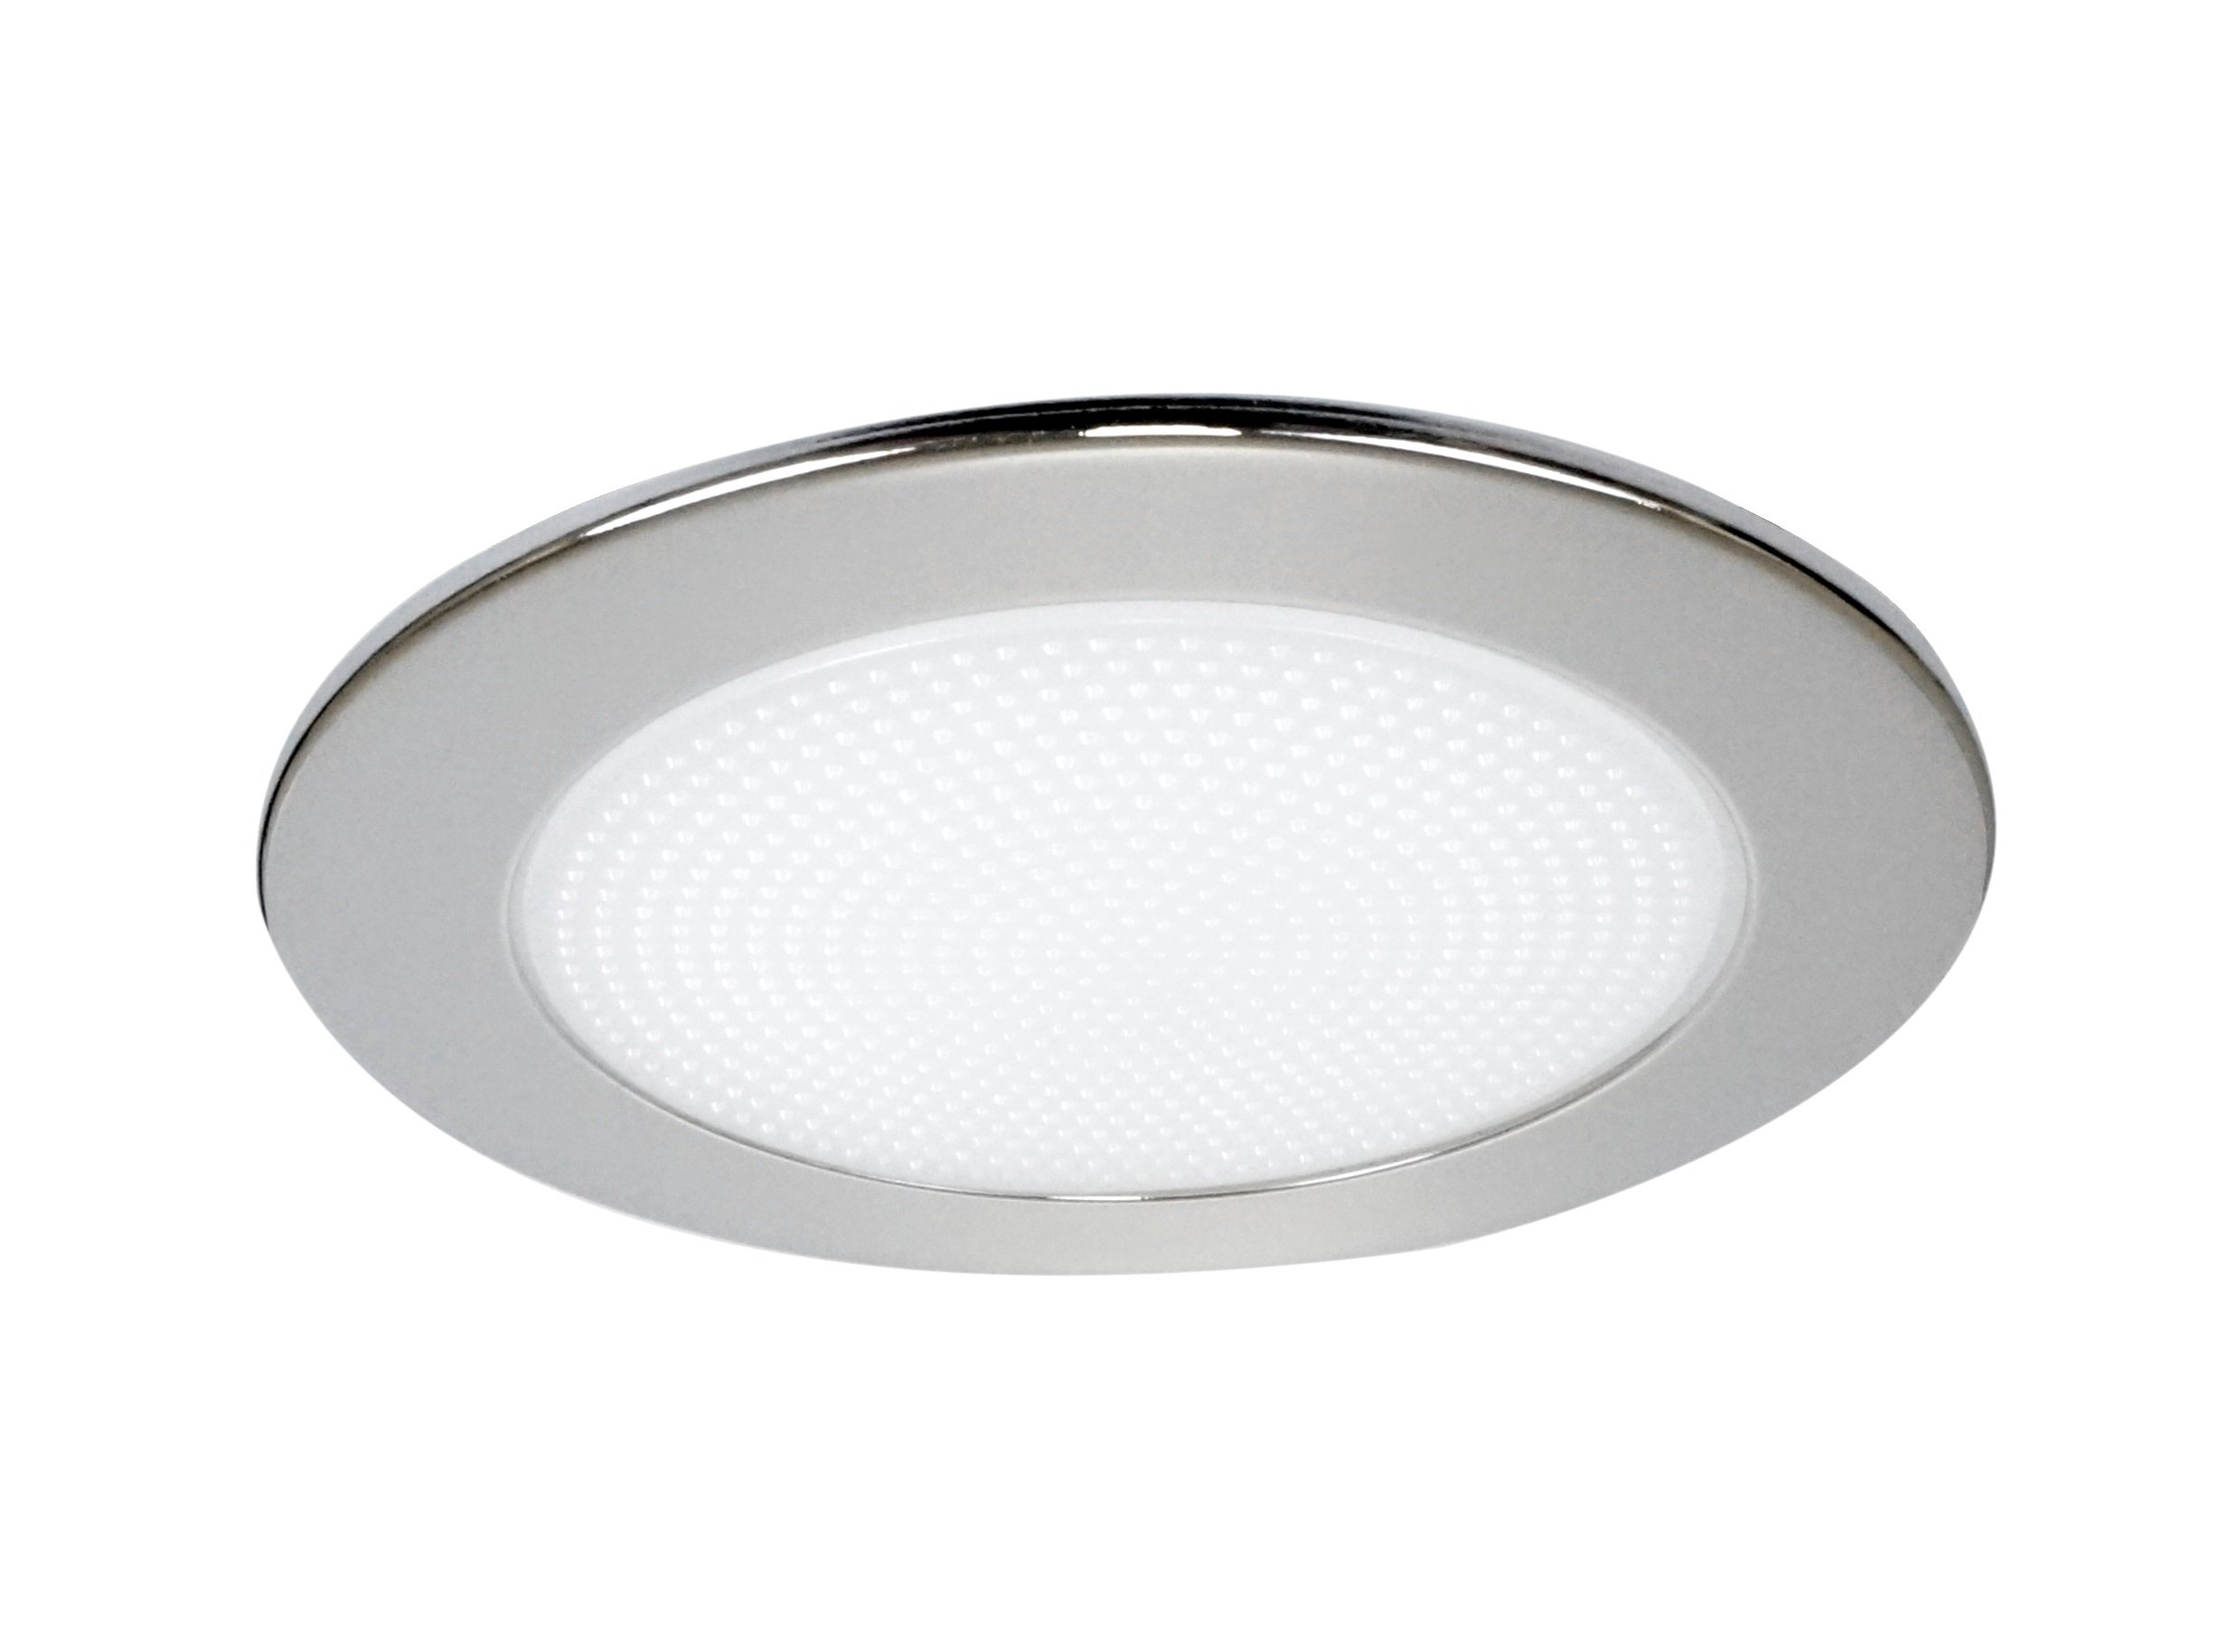 NICOR Lighting 4-inch Recessed Lighting Shower Trim with Albalite Lens, Clear/Reflective (19509CL)